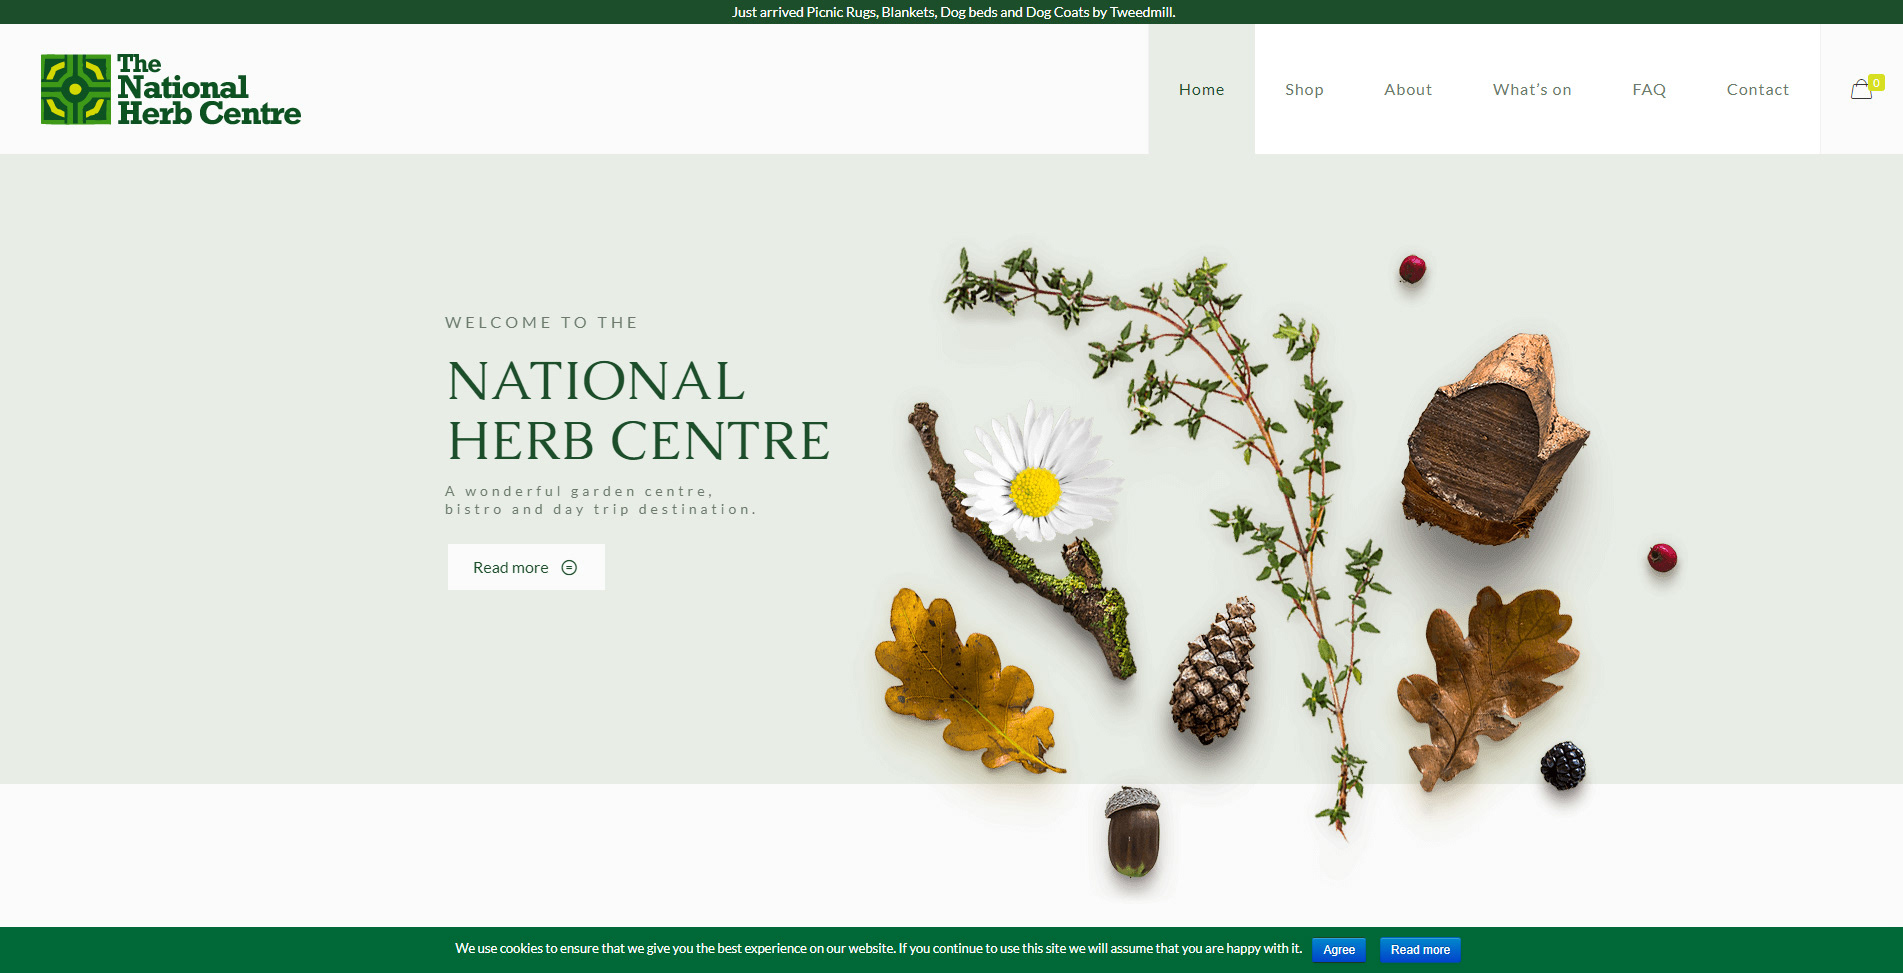 The National Herb Centre